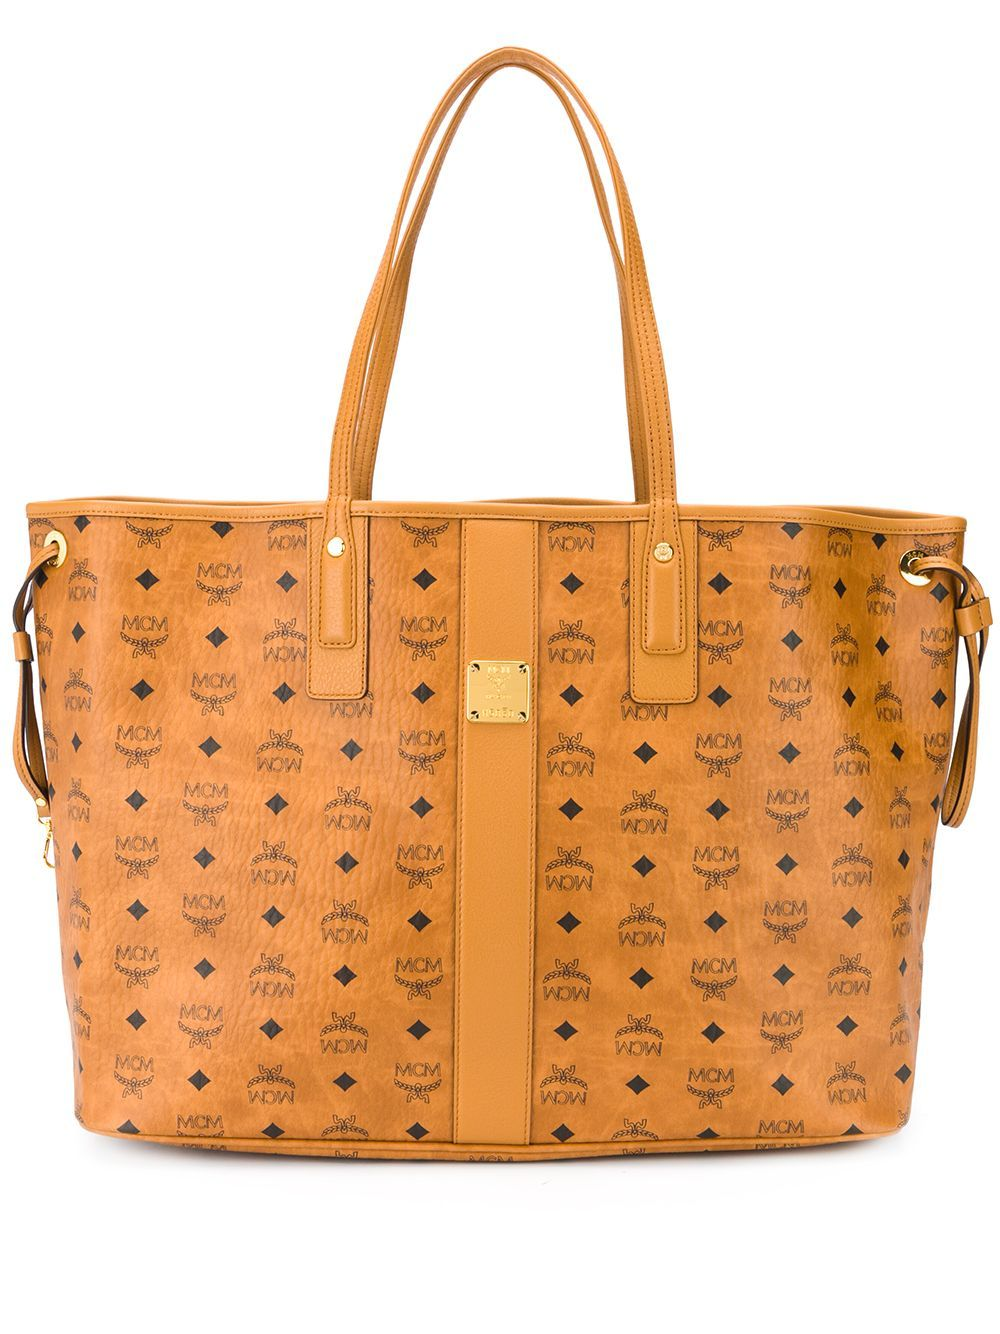 Mcm Leathers MCM WOMEN'S BROWN LEATHER TOTE